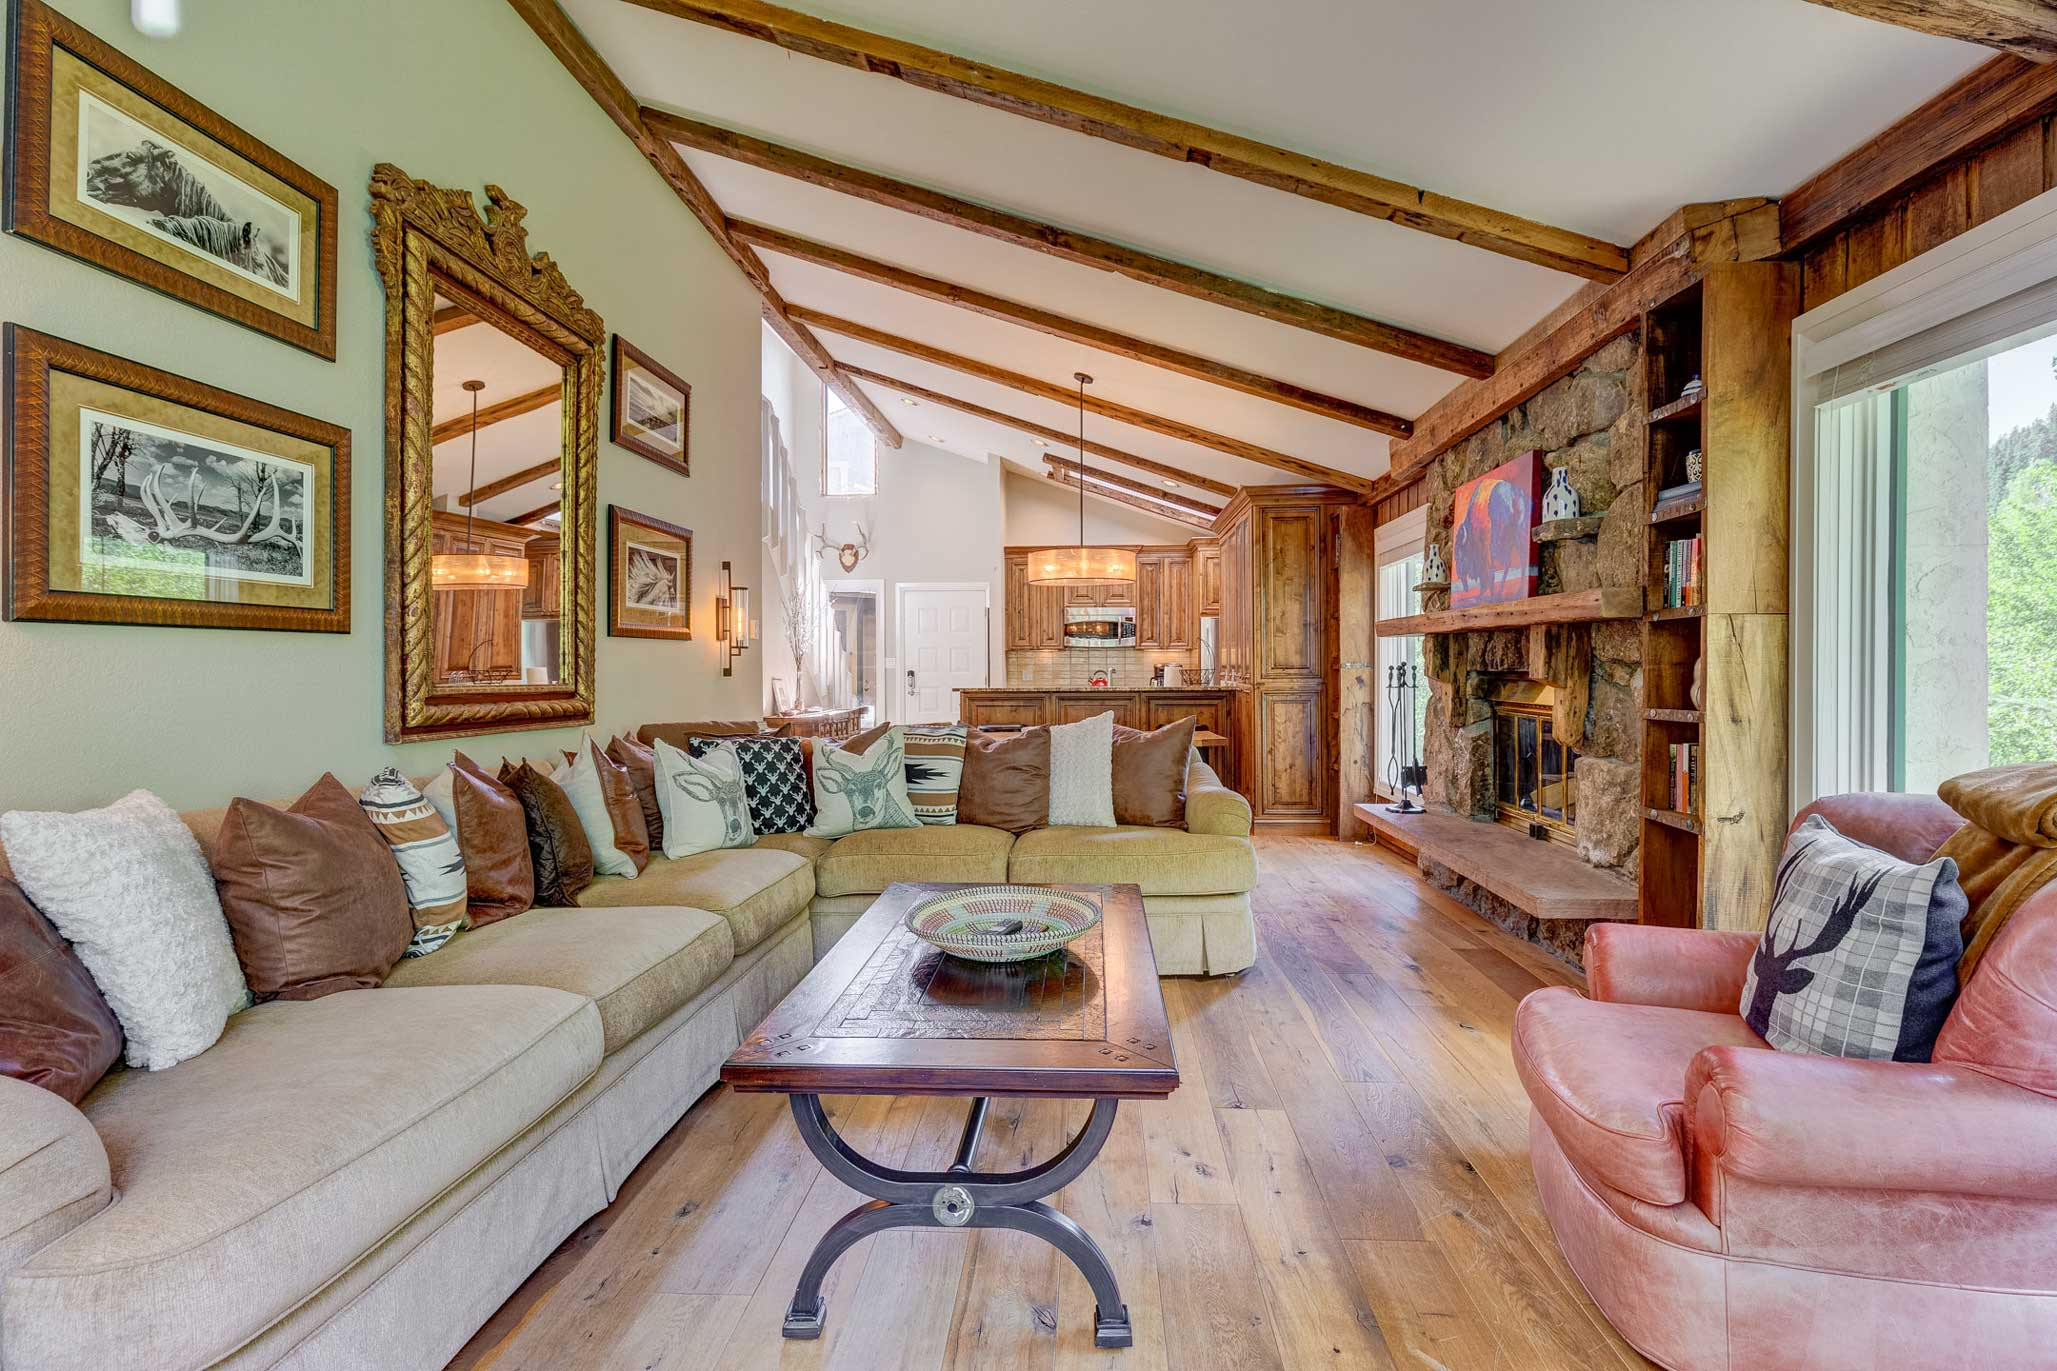 Exposed beams accentuate the vaulted ceilings in the great room.